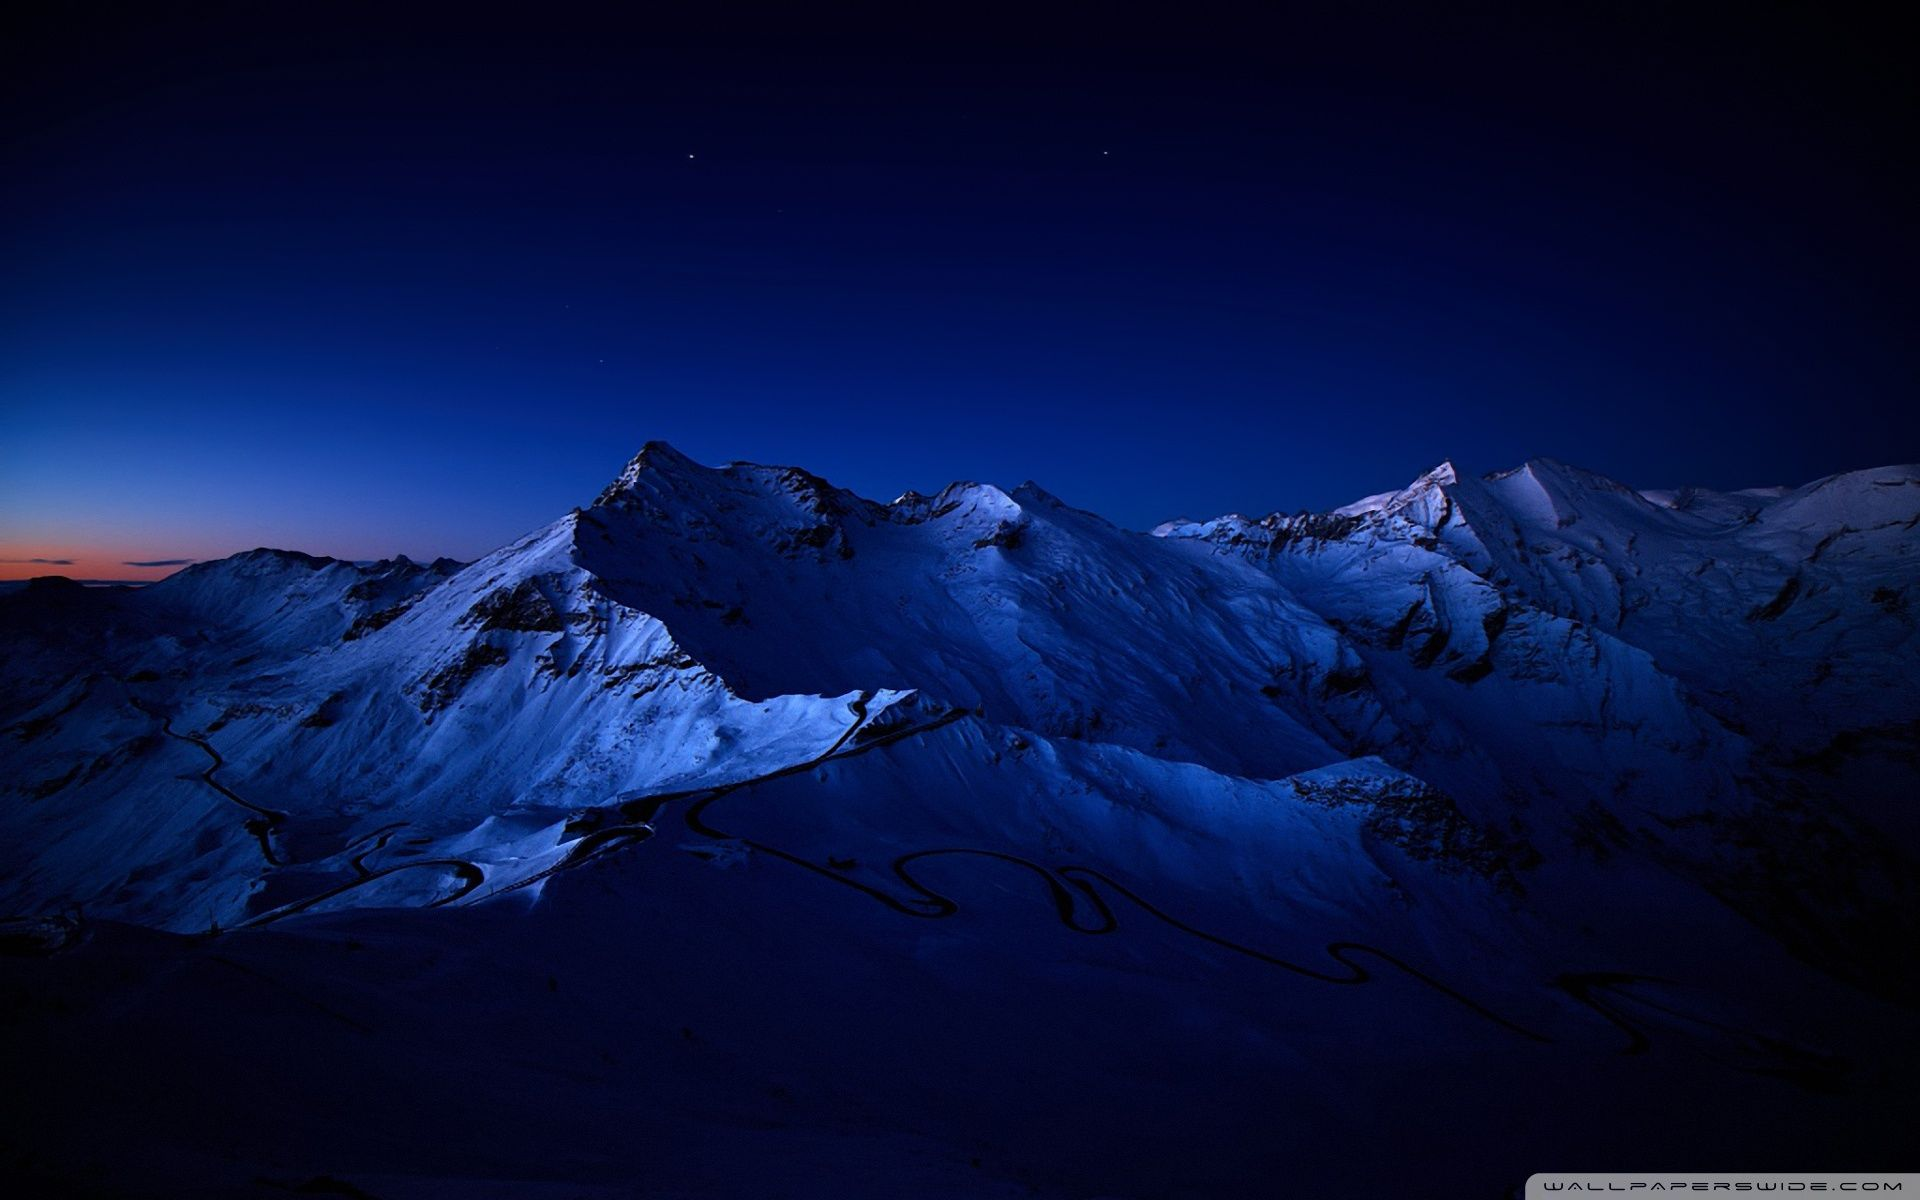 Mindblowing Mountain Wallpapers For Your Desktop 1920 1080 Mountain Pics Wallpapers 24 Wallpapers A Mountains At Night Mountain Pictures Mountain Wallpaper